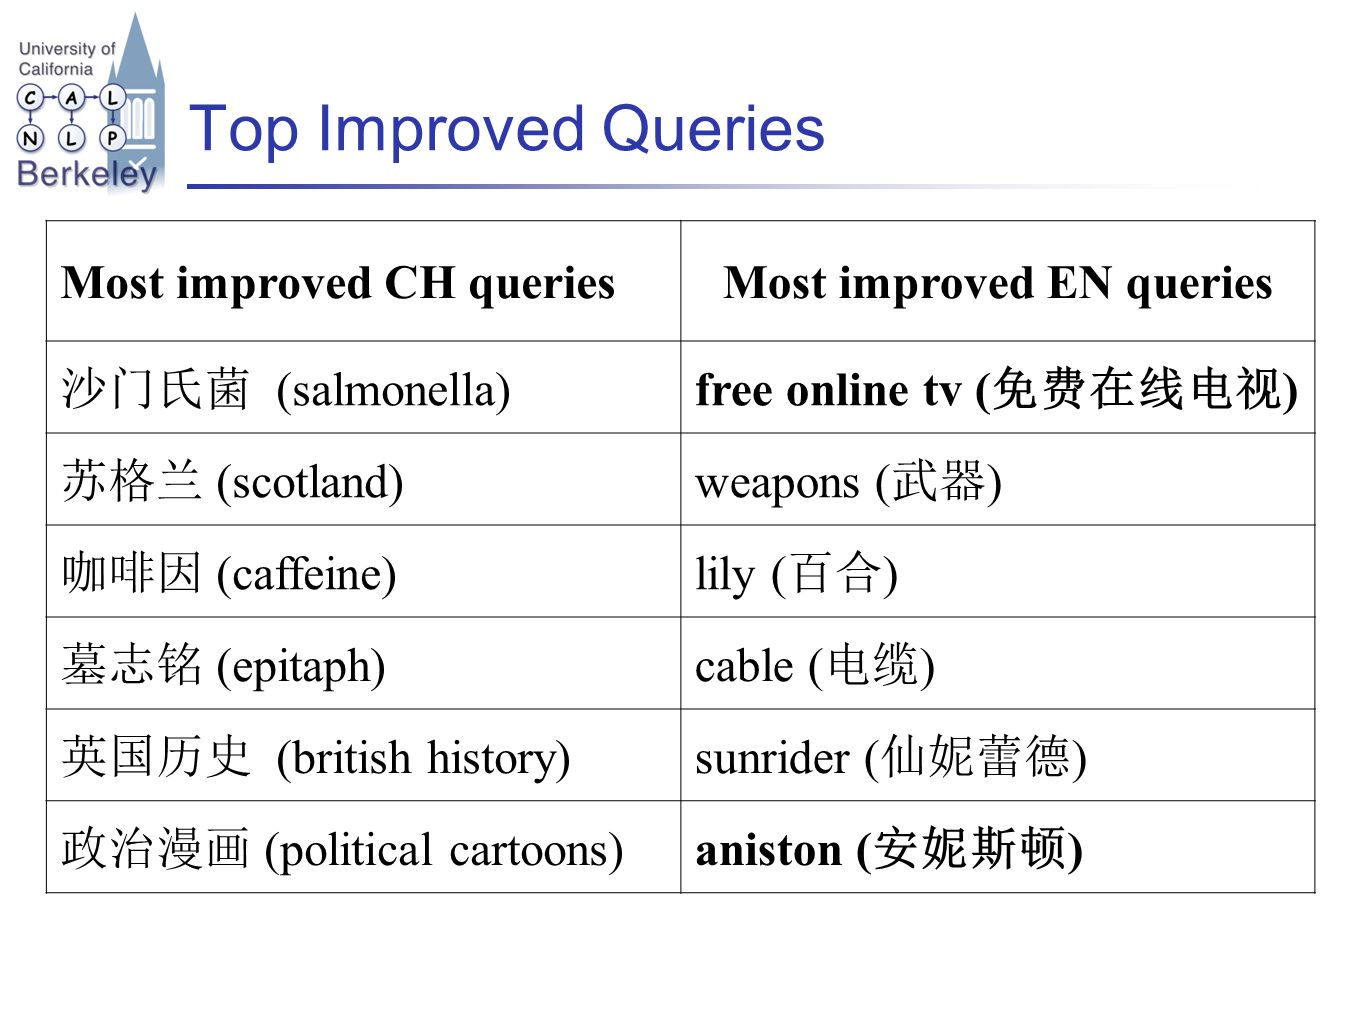 Top Improved Queries Most improved CH queriesMost improved EN queries 沙门氏菌 (salmonella)free online tv ( 免费在线电视 ) 苏格兰 (scotland)weapons ( 武器 ) 咖啡因 (caffeine)lily ( 百合 ) 墓志铭 (epitaph)cable ( 电缆 ) 英国历史 (british history)sunrider ( 仙妮蕾德 ) 政治漫画 (political cartoons)aniston ( 安妮斯顿 )